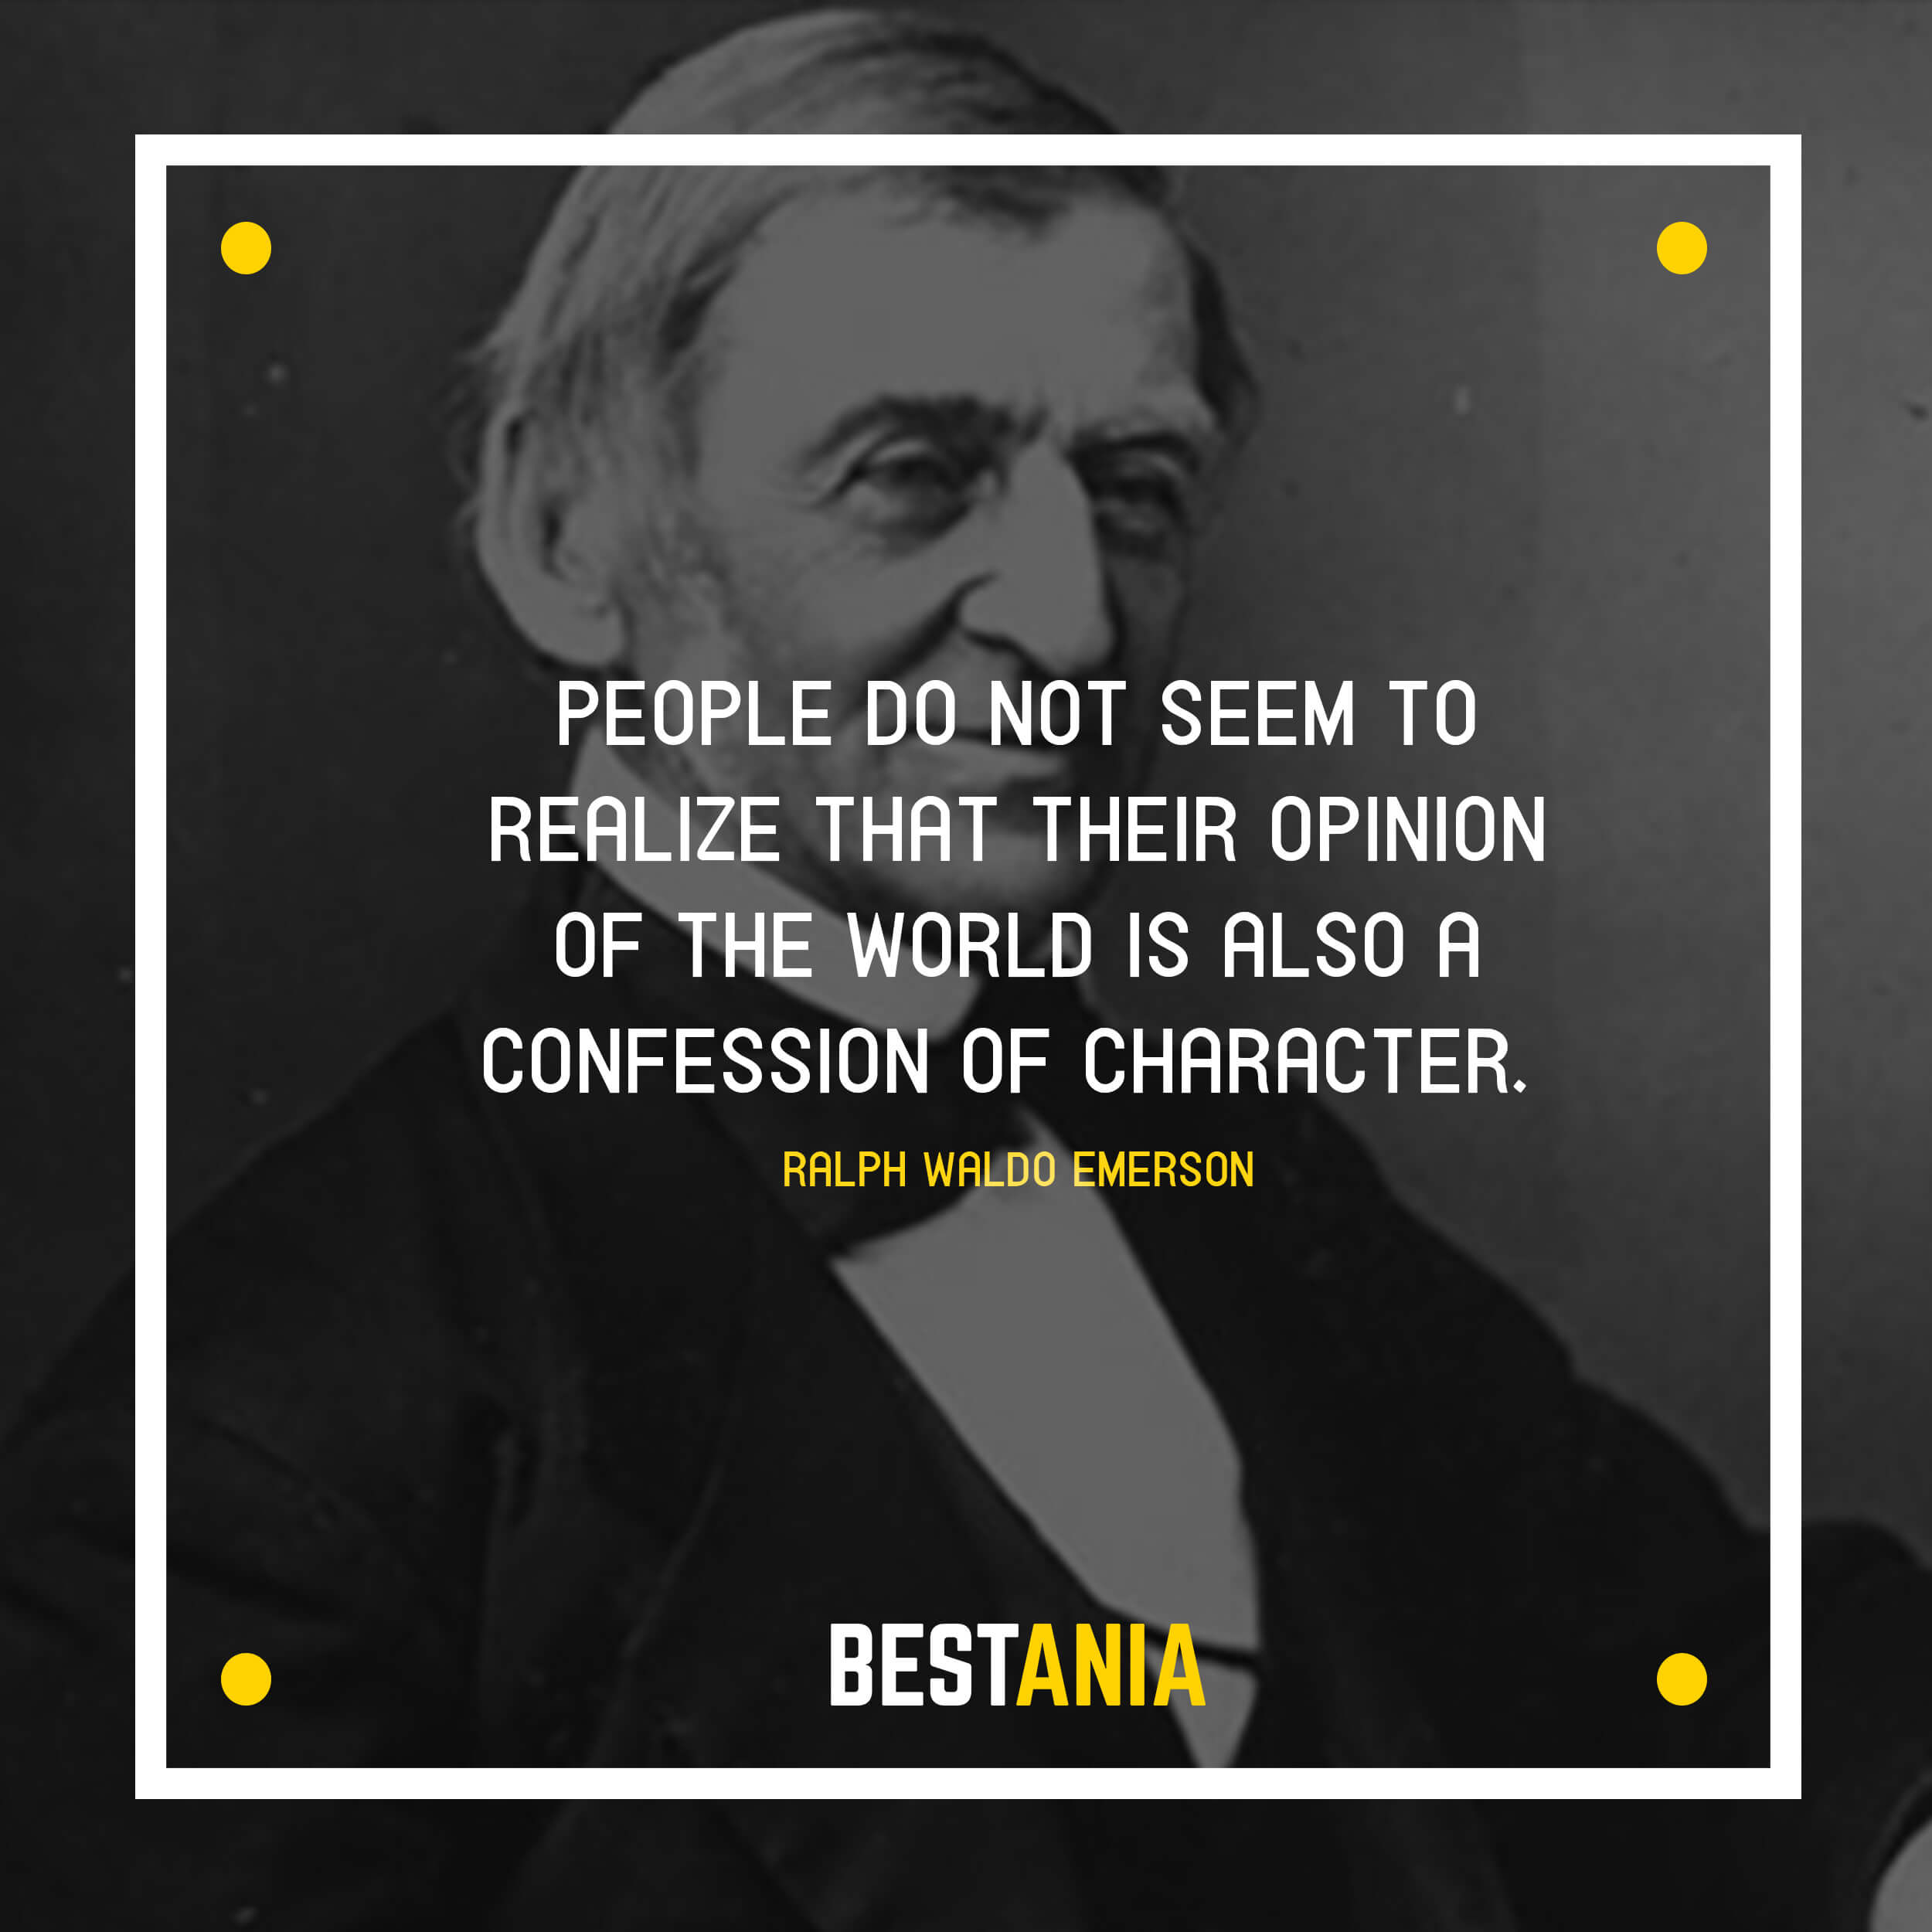 """PEOPLE DO NOT SEEM TO REALIZE THAT THEIR OPINION OF THE WORLD IS ALSO A CONFESSION OF CHARACTER."" RALPH WALDO EMERSON"